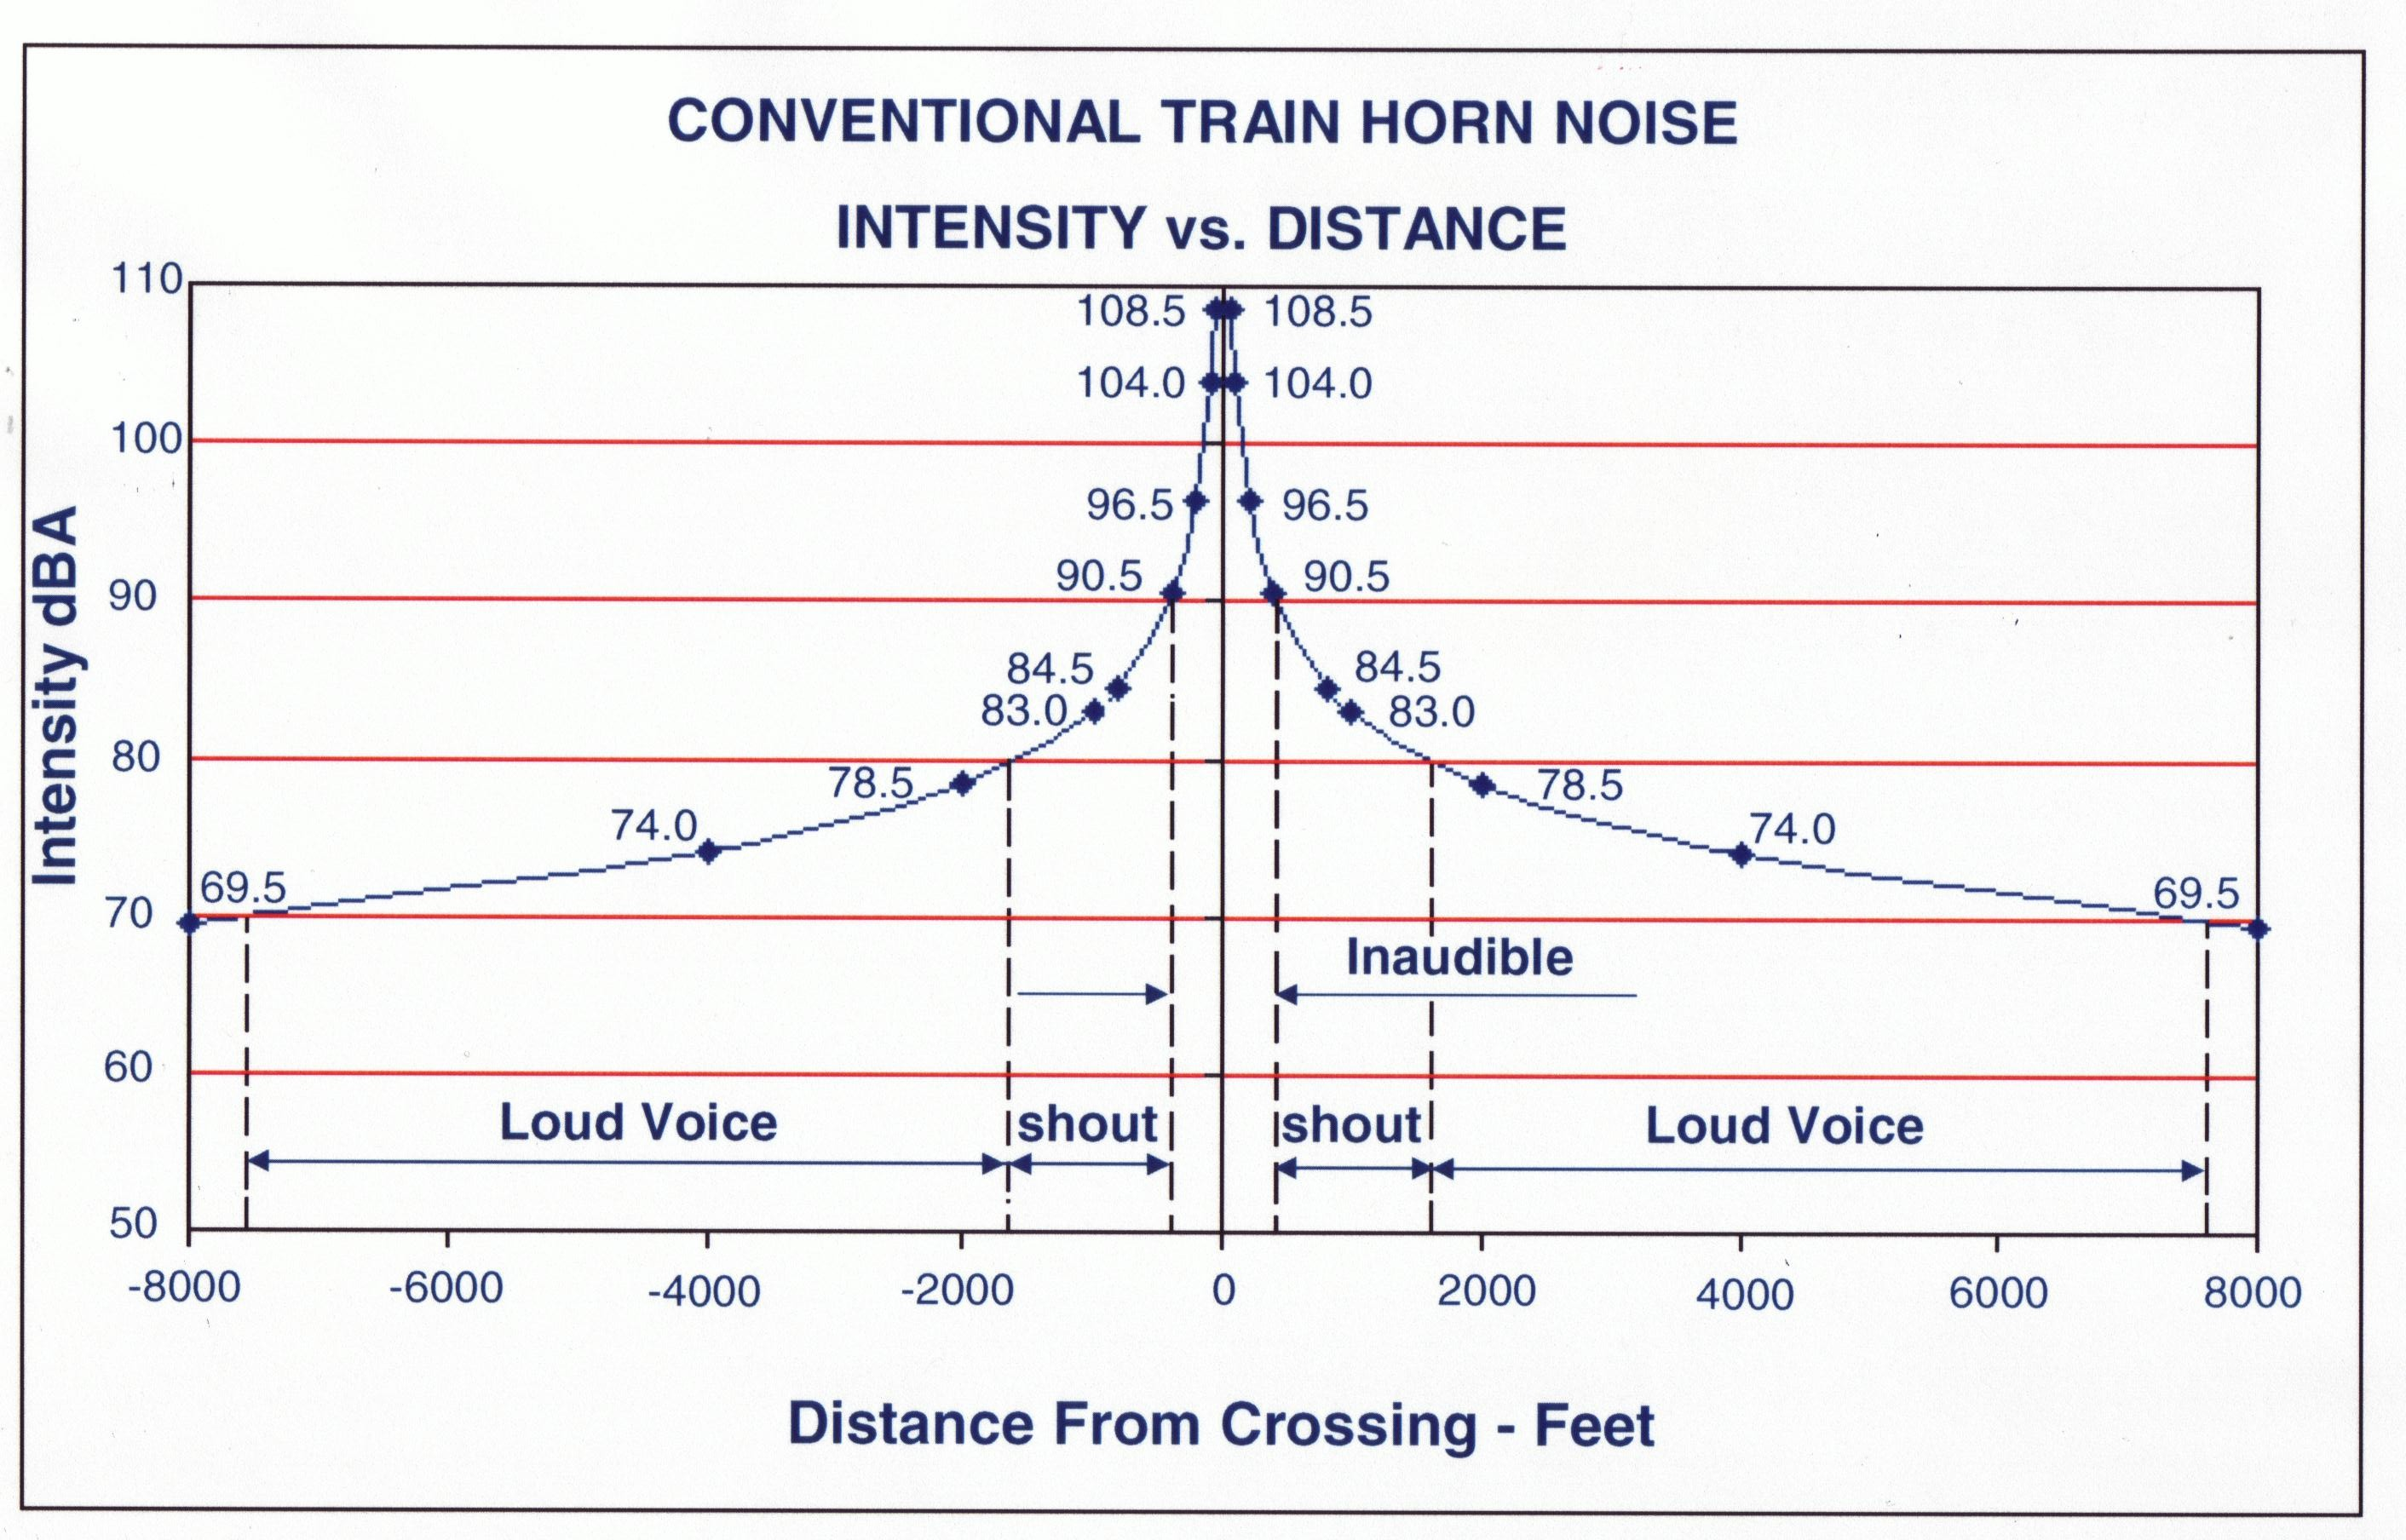 Apwa Reporter Is Train Horn Noise A Problem In Your Town? Air Compressor  115V Wiring Schematic Train Horn Schematic